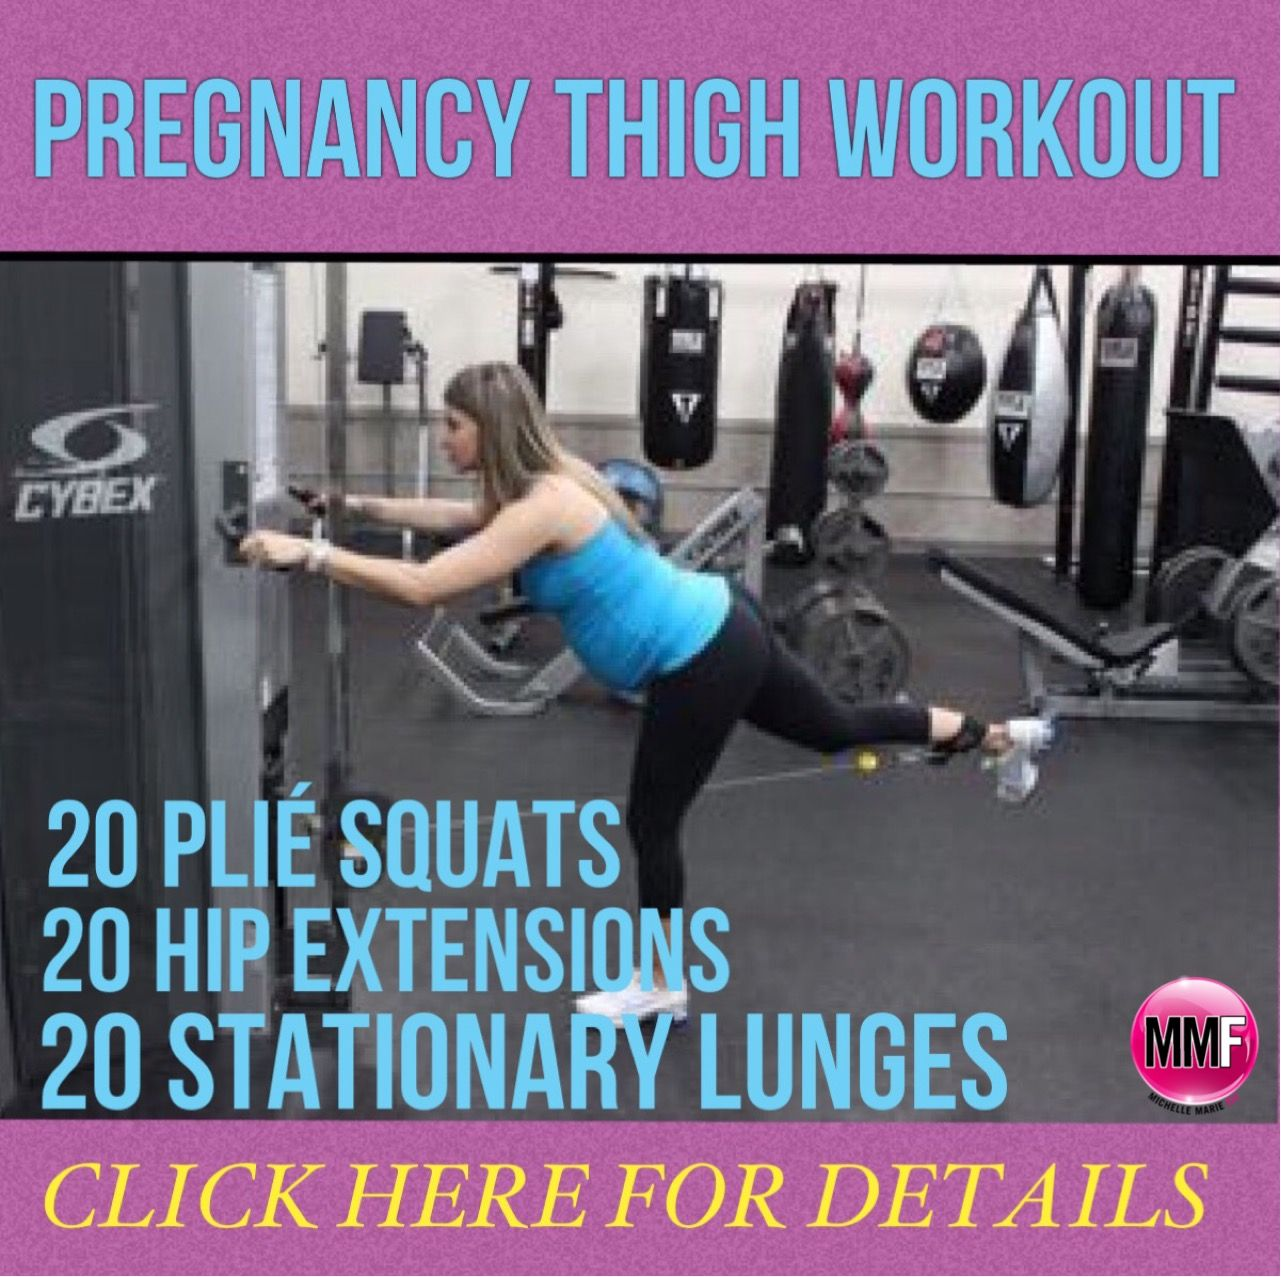 how to lose excess weight during pregnancy